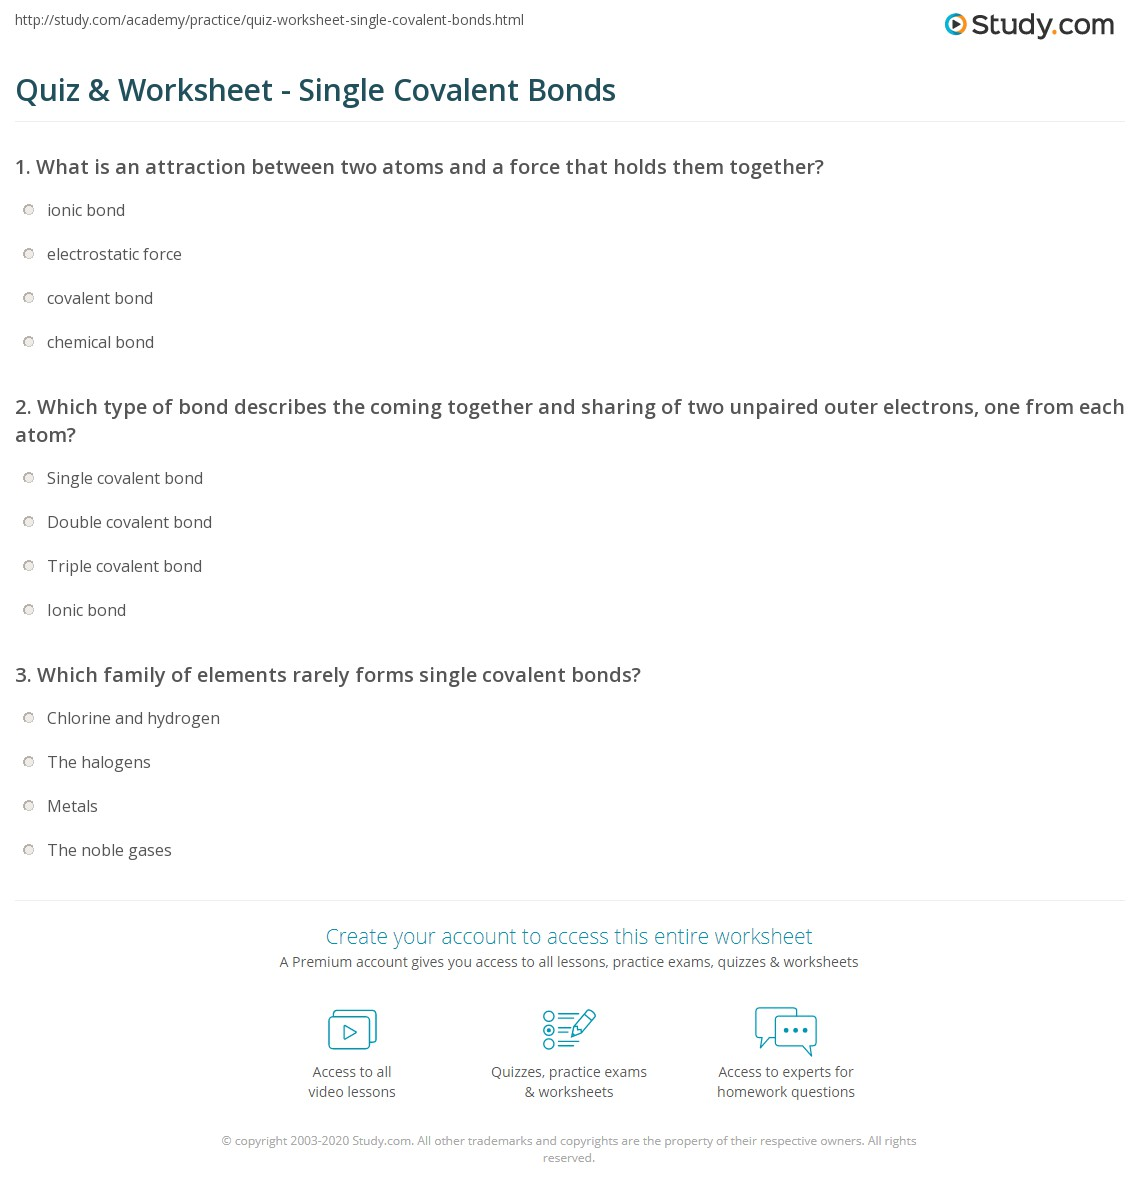 Worksheets Covalent Bonds Worksheet worksheet on covalent bonding livinghealthybulletin bond answers livinghealthybulletin